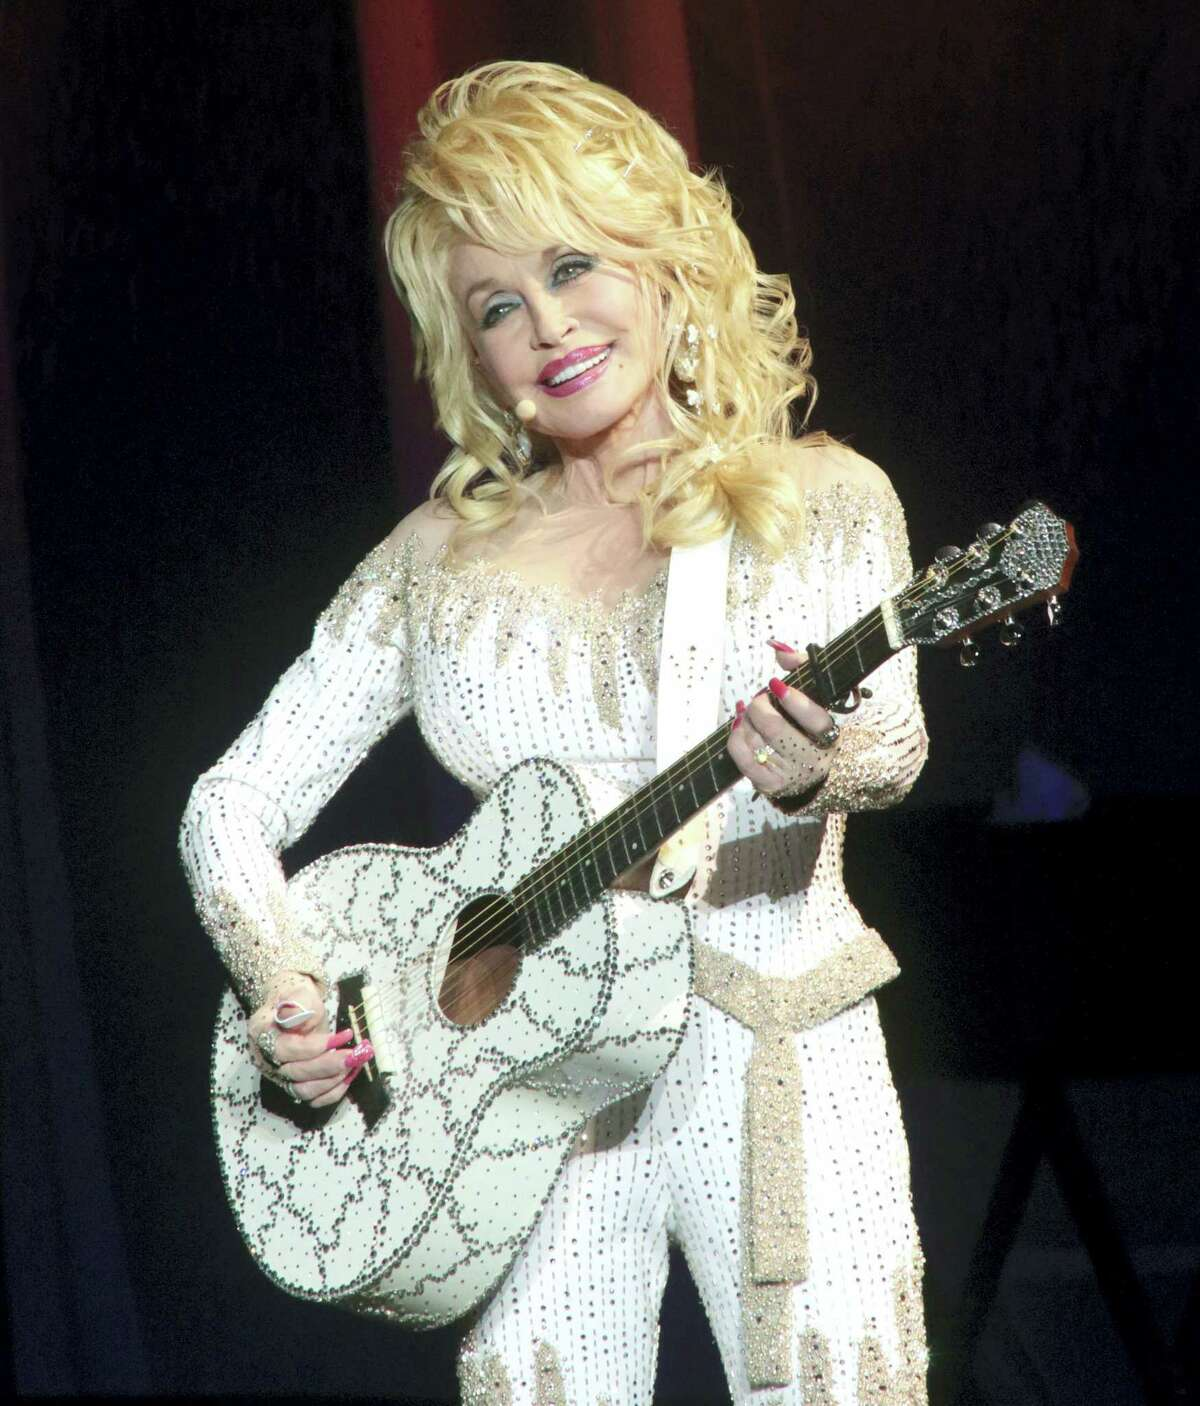 In this June 15, 2016, file photo, Dolly Parton performs in concert during her Pure & Simple Tour in Philadelphia. Parton will receive the Willie Nelson Lifetime Achievement Award at the 50th annual Country Music Association Awards in Nashville, Tenn., on Nov. 2.